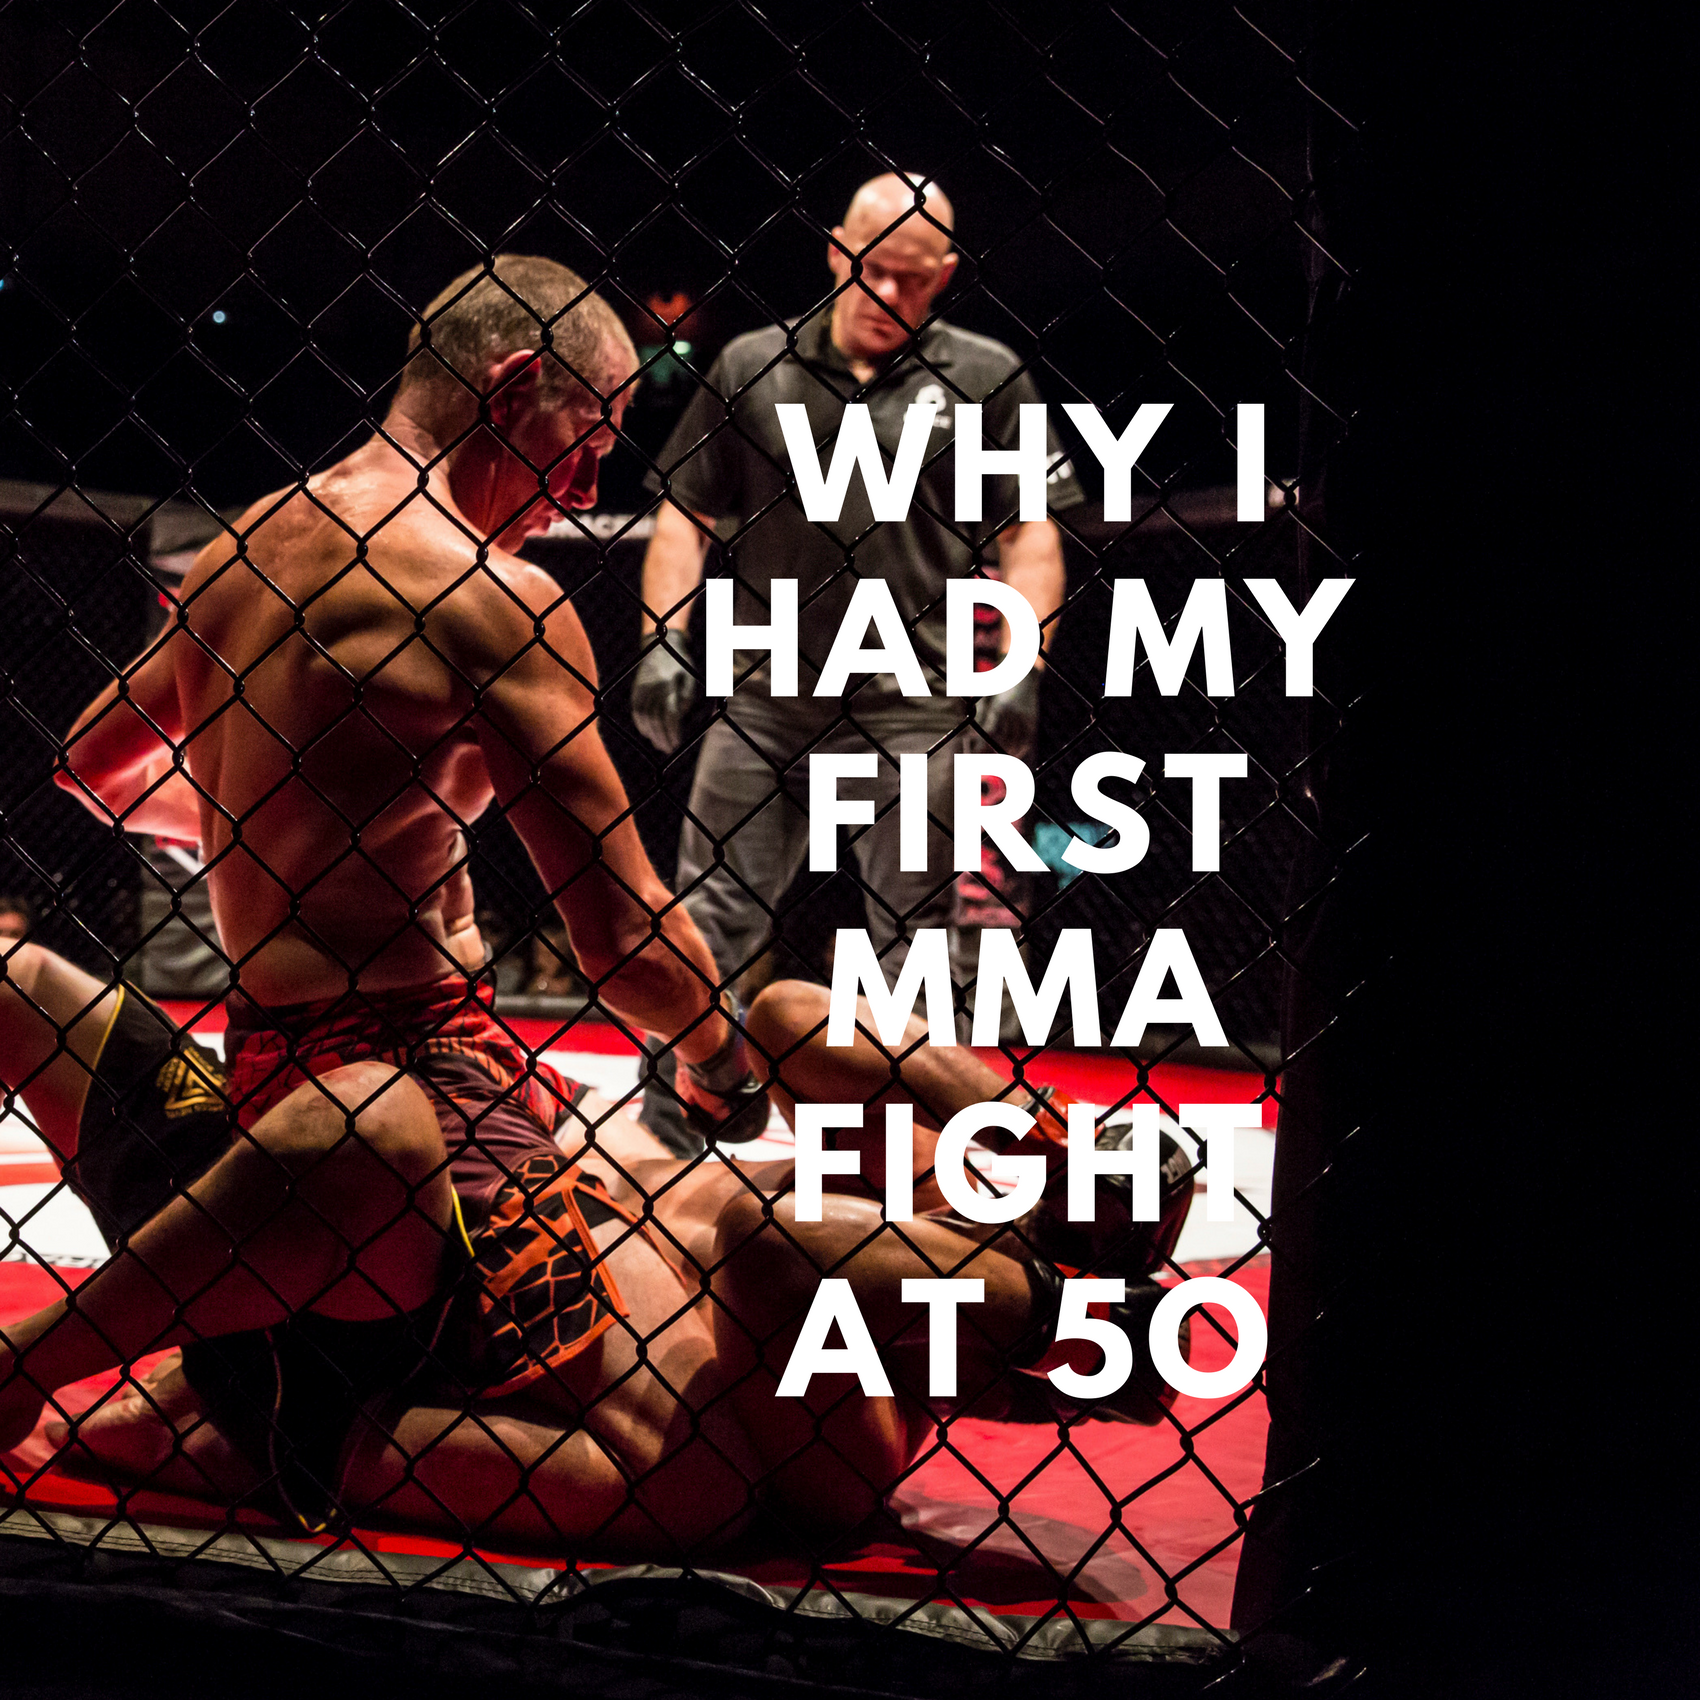 Why I Had My First Cage Fight at 50